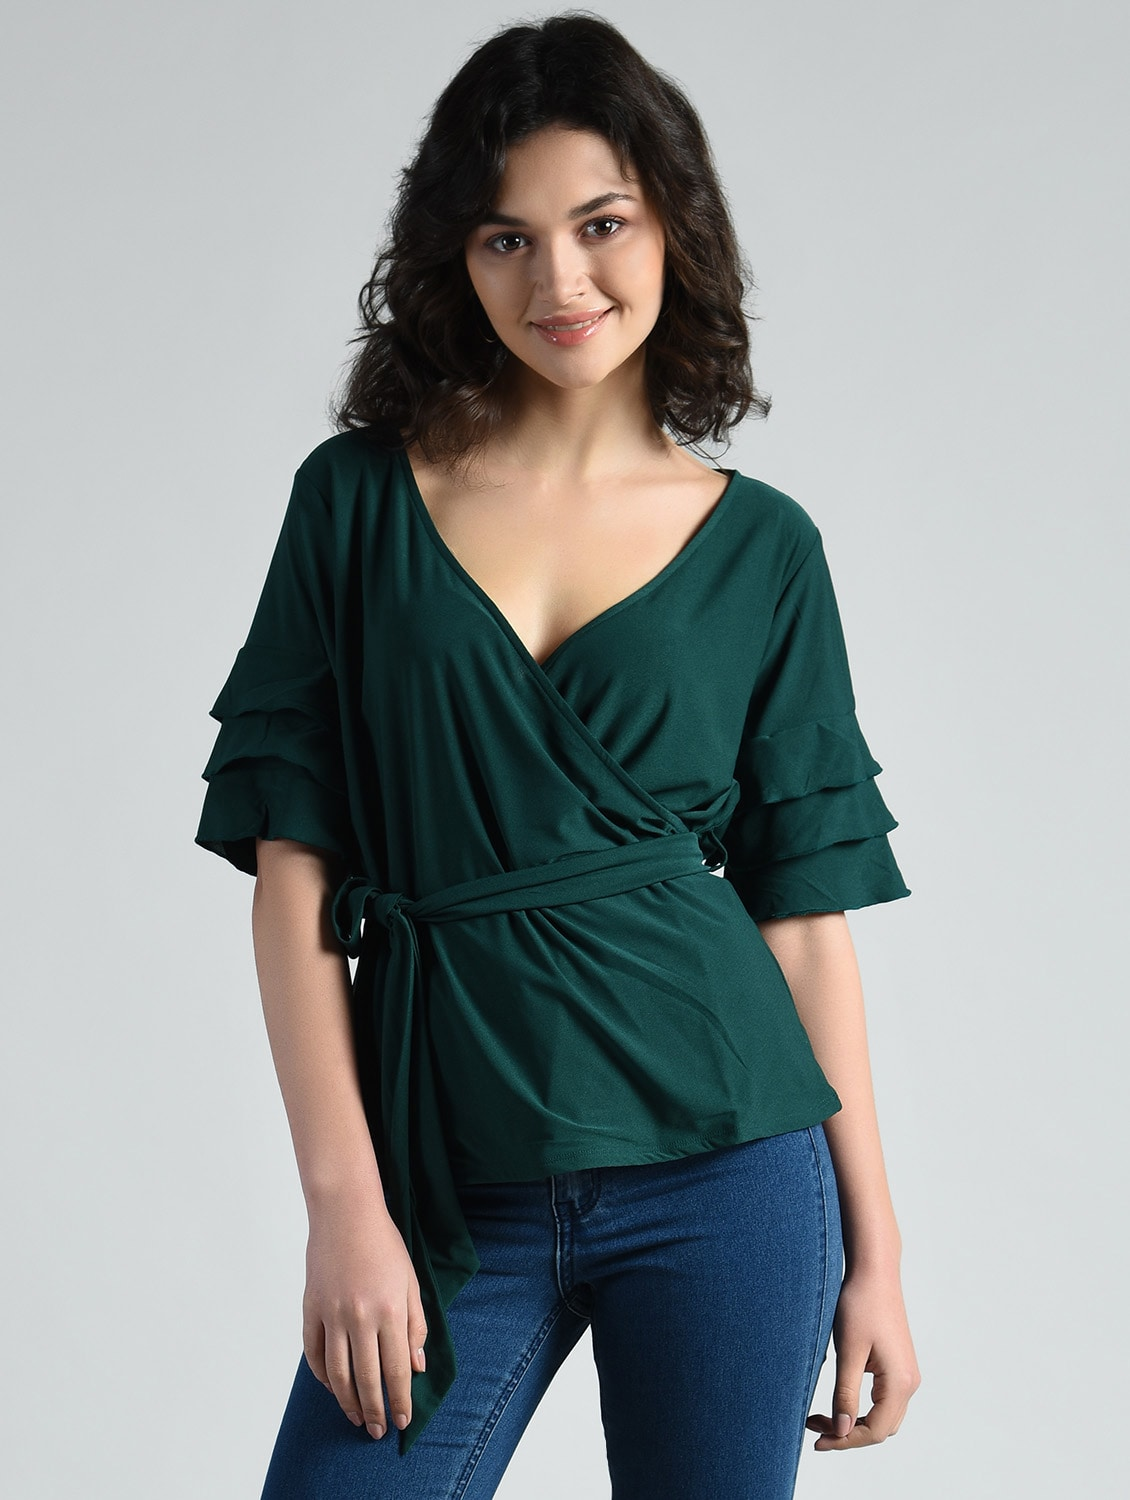 fbbd0b720bfb2b Buy Self Tie Up Layered Ruffle Sleeved Top for Women from Aara for ₹537 at  46% off